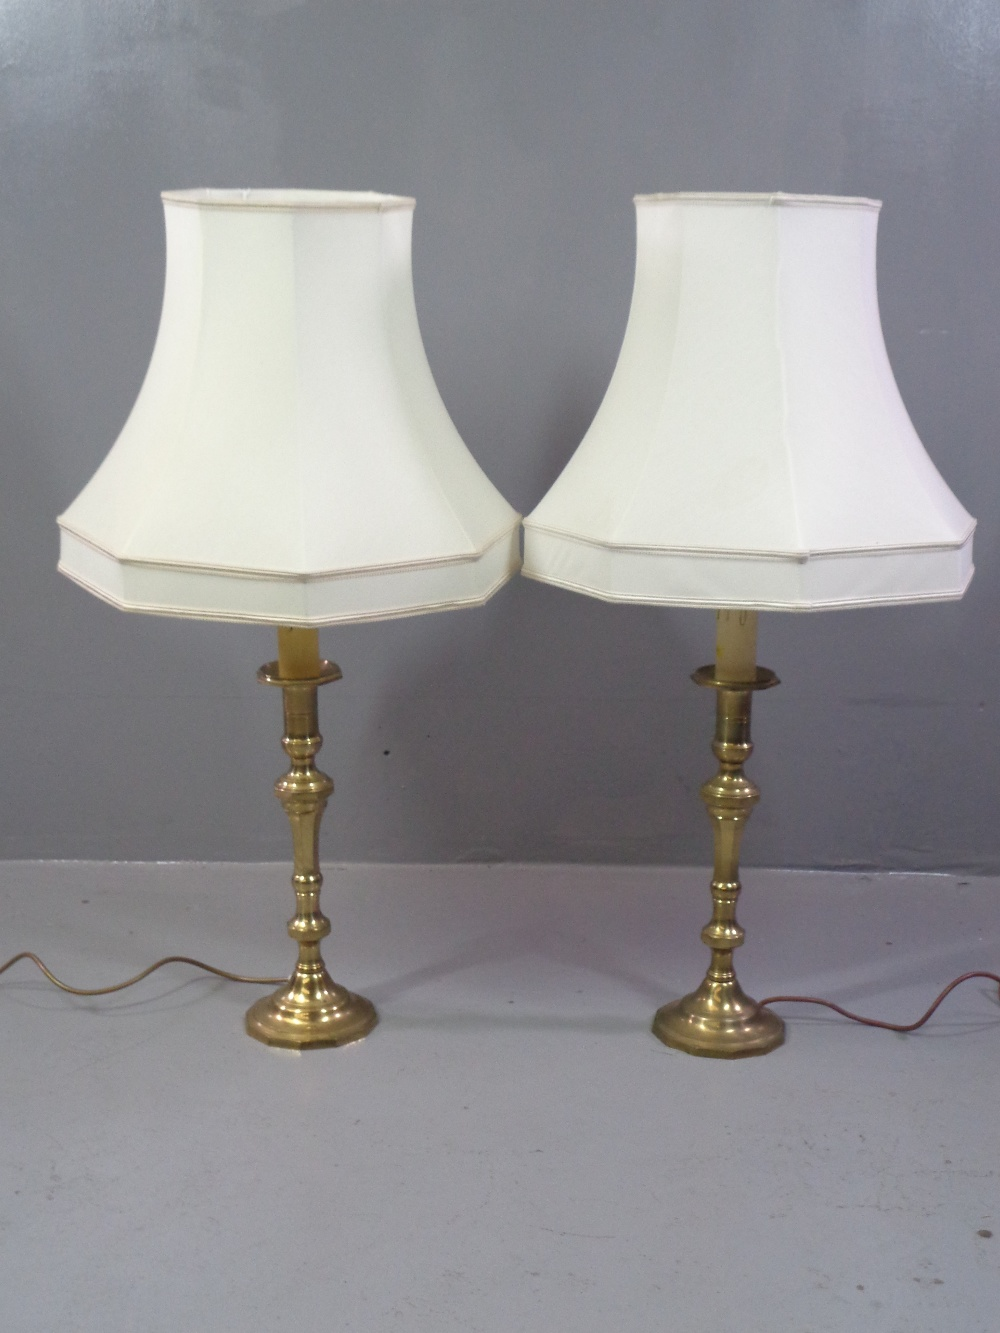 ORNATE TABLES LAMPS - five, three matching brass effect, 67cms H (with shades) and a pair of similar - Image 2 of 2